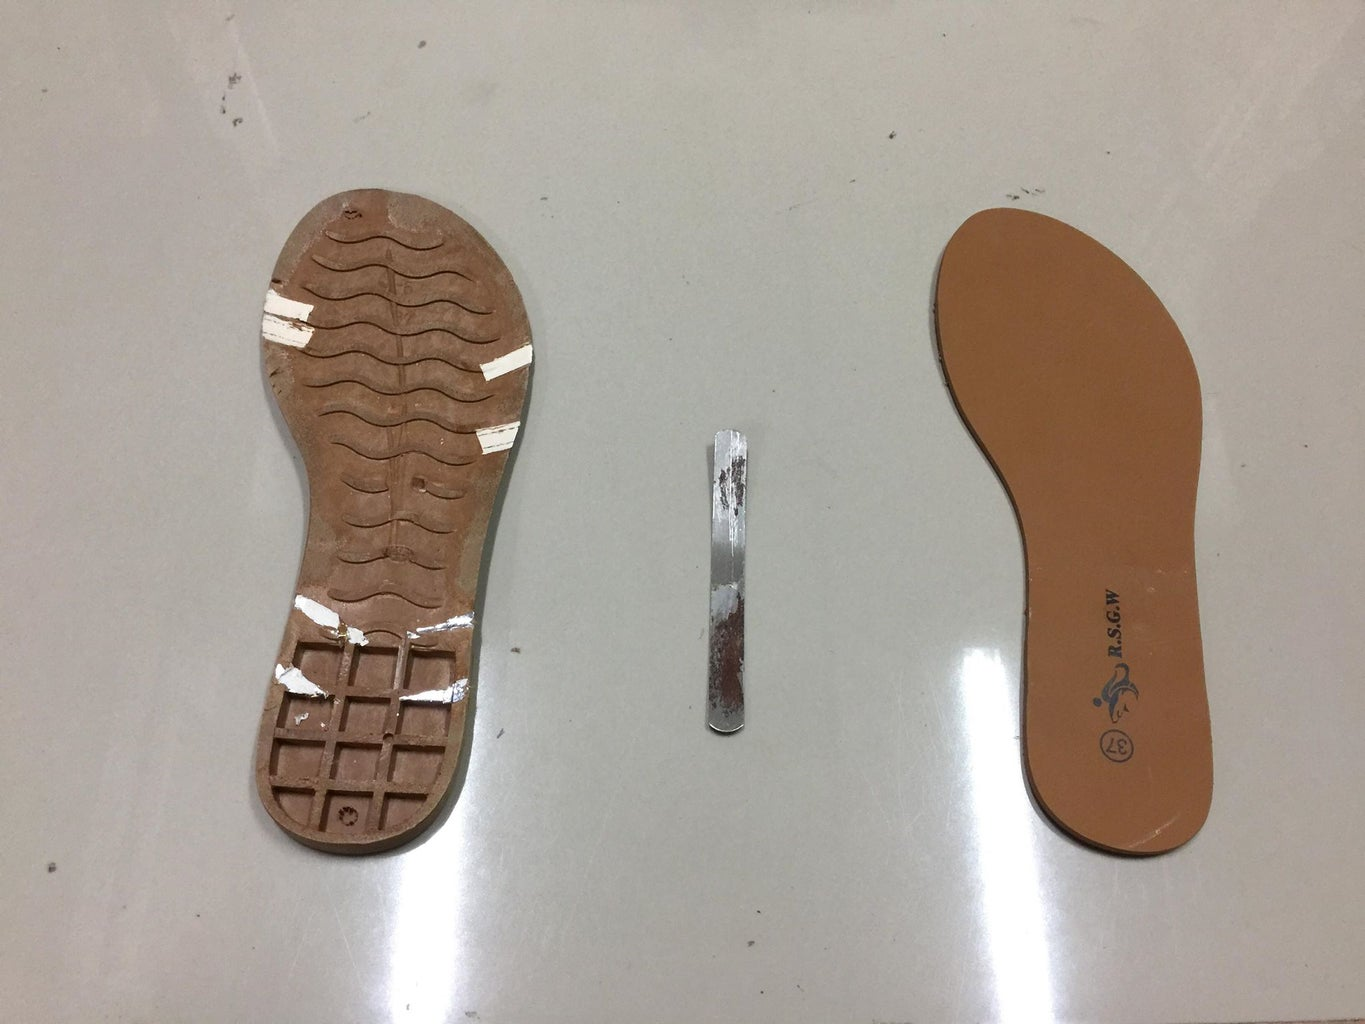 Step 1: Taking Apart Your Sandals